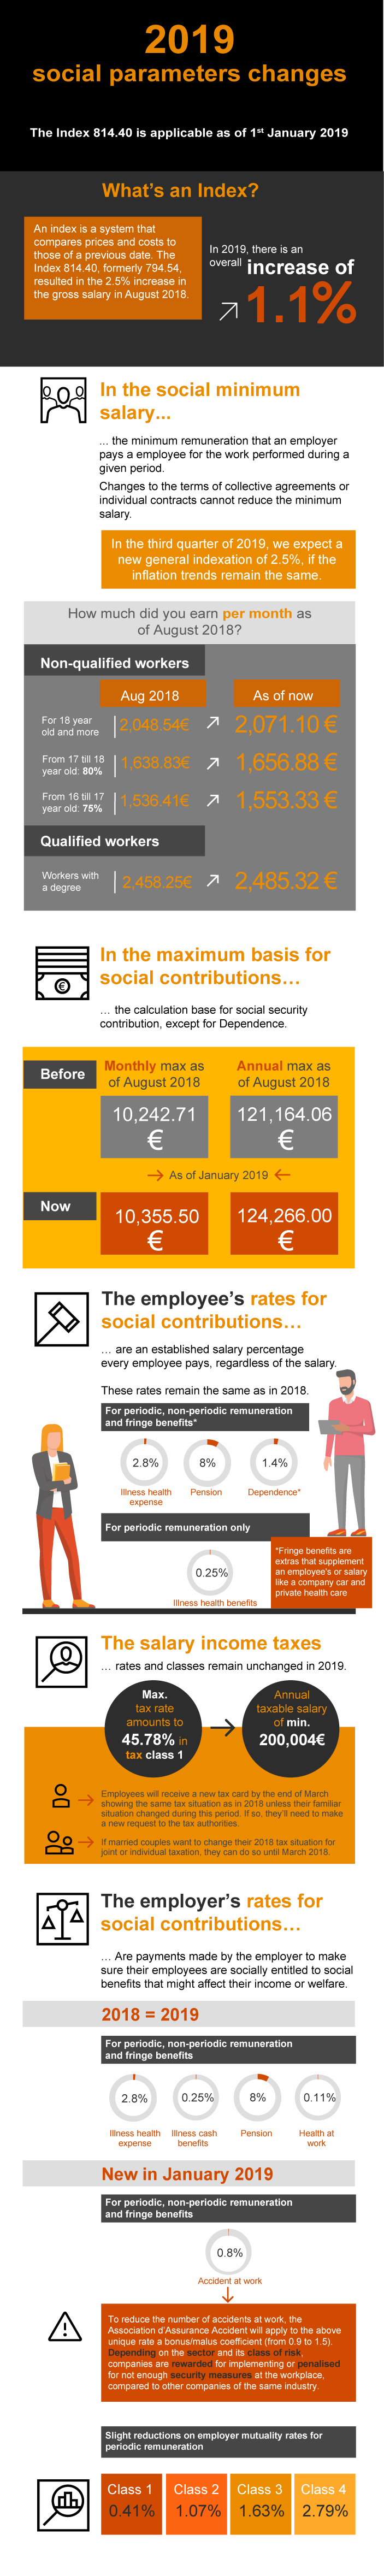 Infographic 2019 social parameter changes